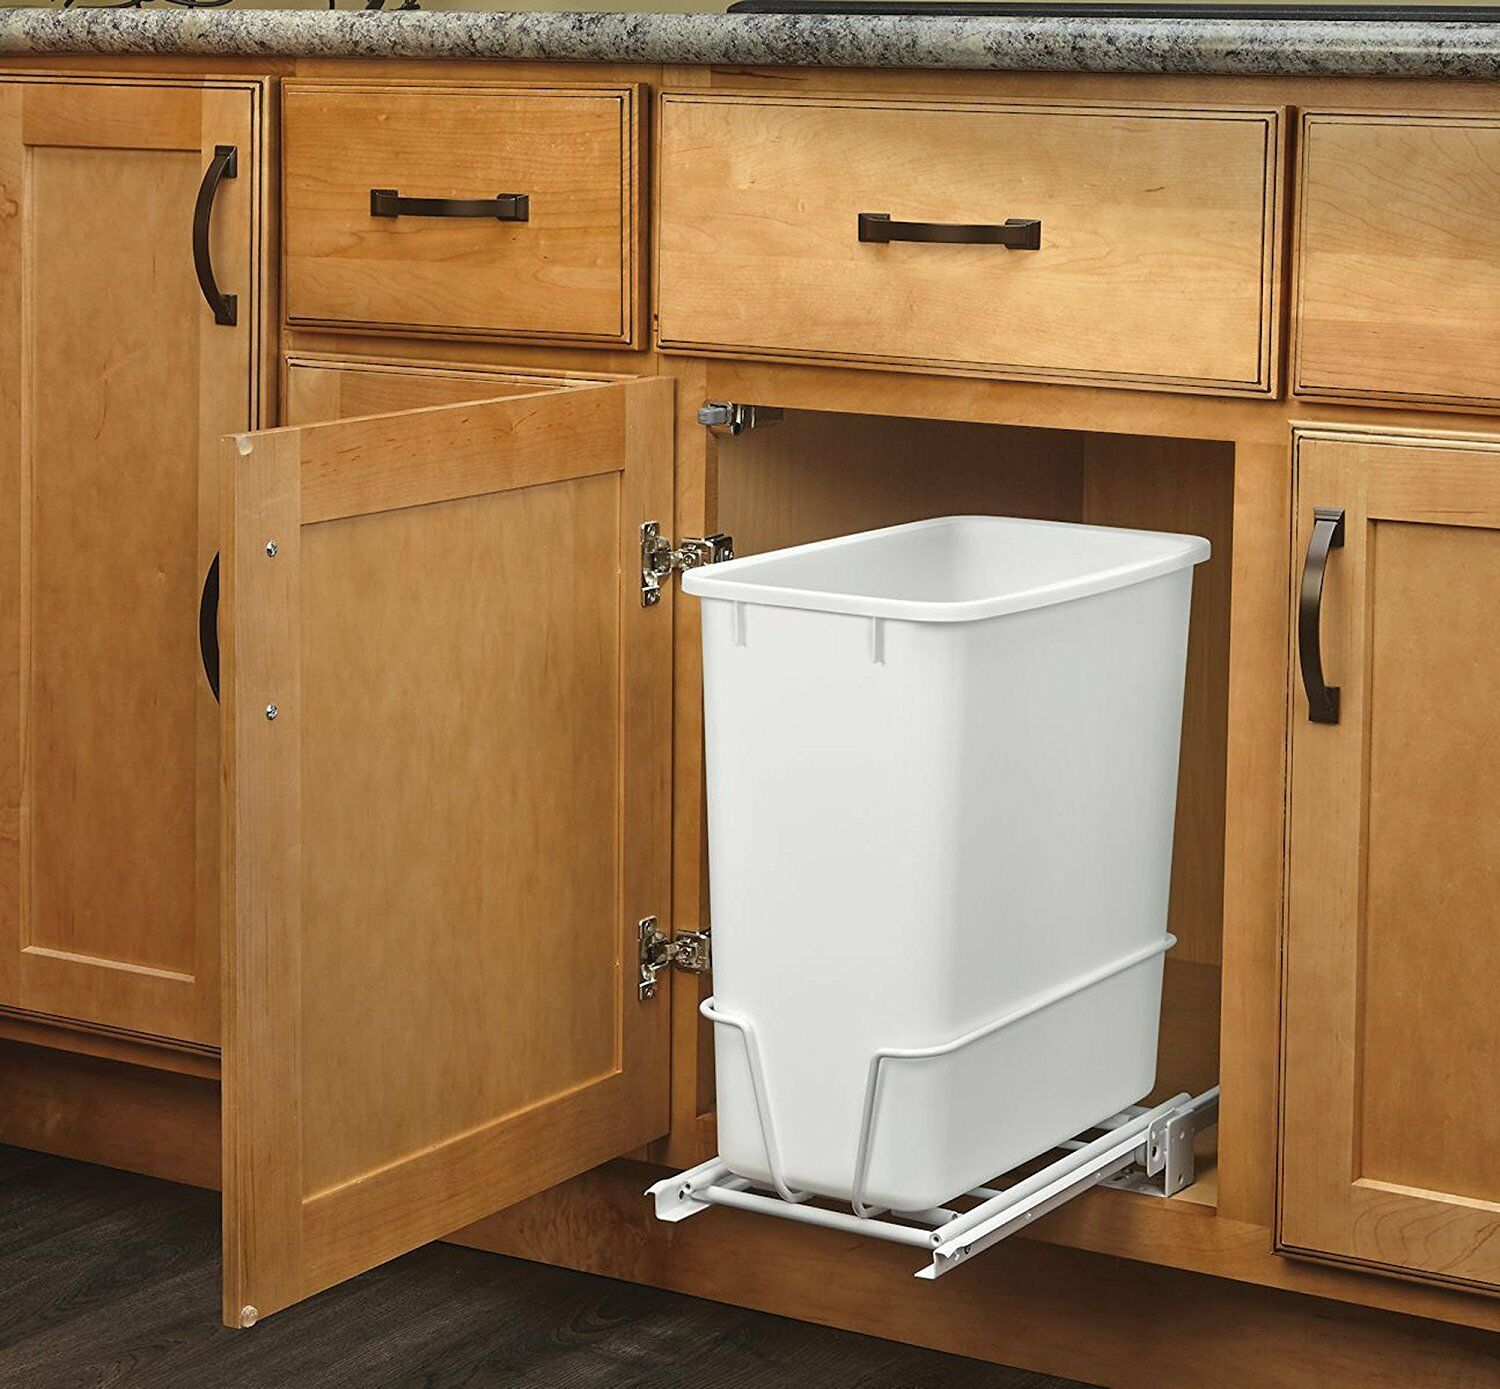 undercounter kitchen trash can runner washable 20 quart white waste bin garbage pull